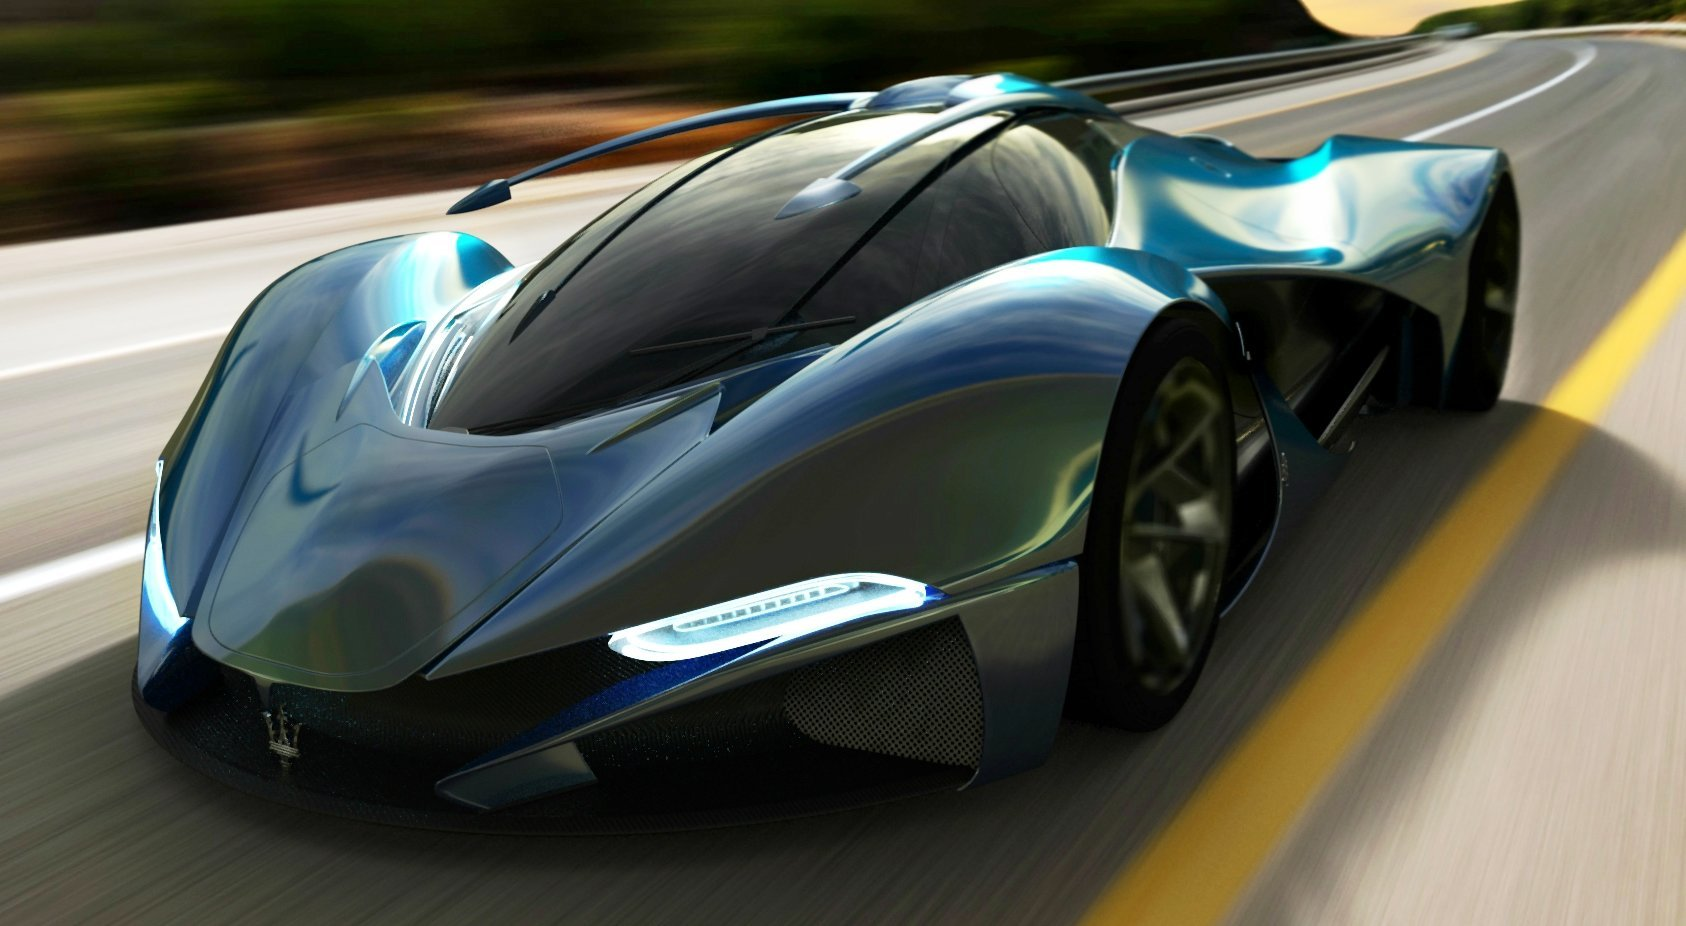 Lamaserati By Mark Hostler The Wildest Hypercar Concept Ever